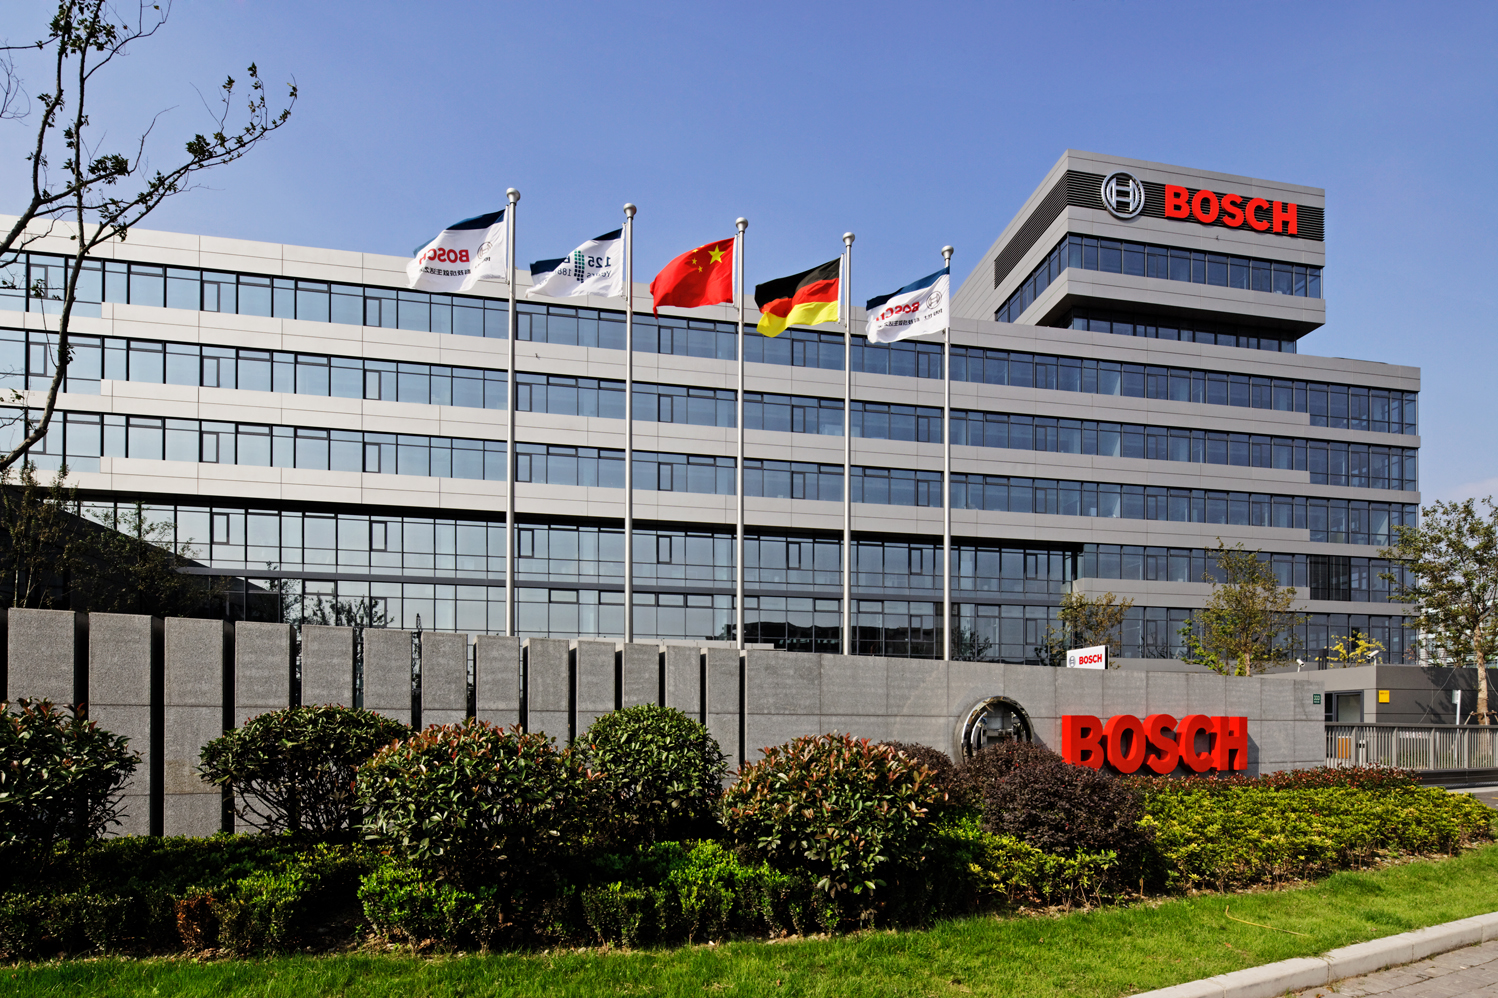 Bosch new HQ in Shanghai